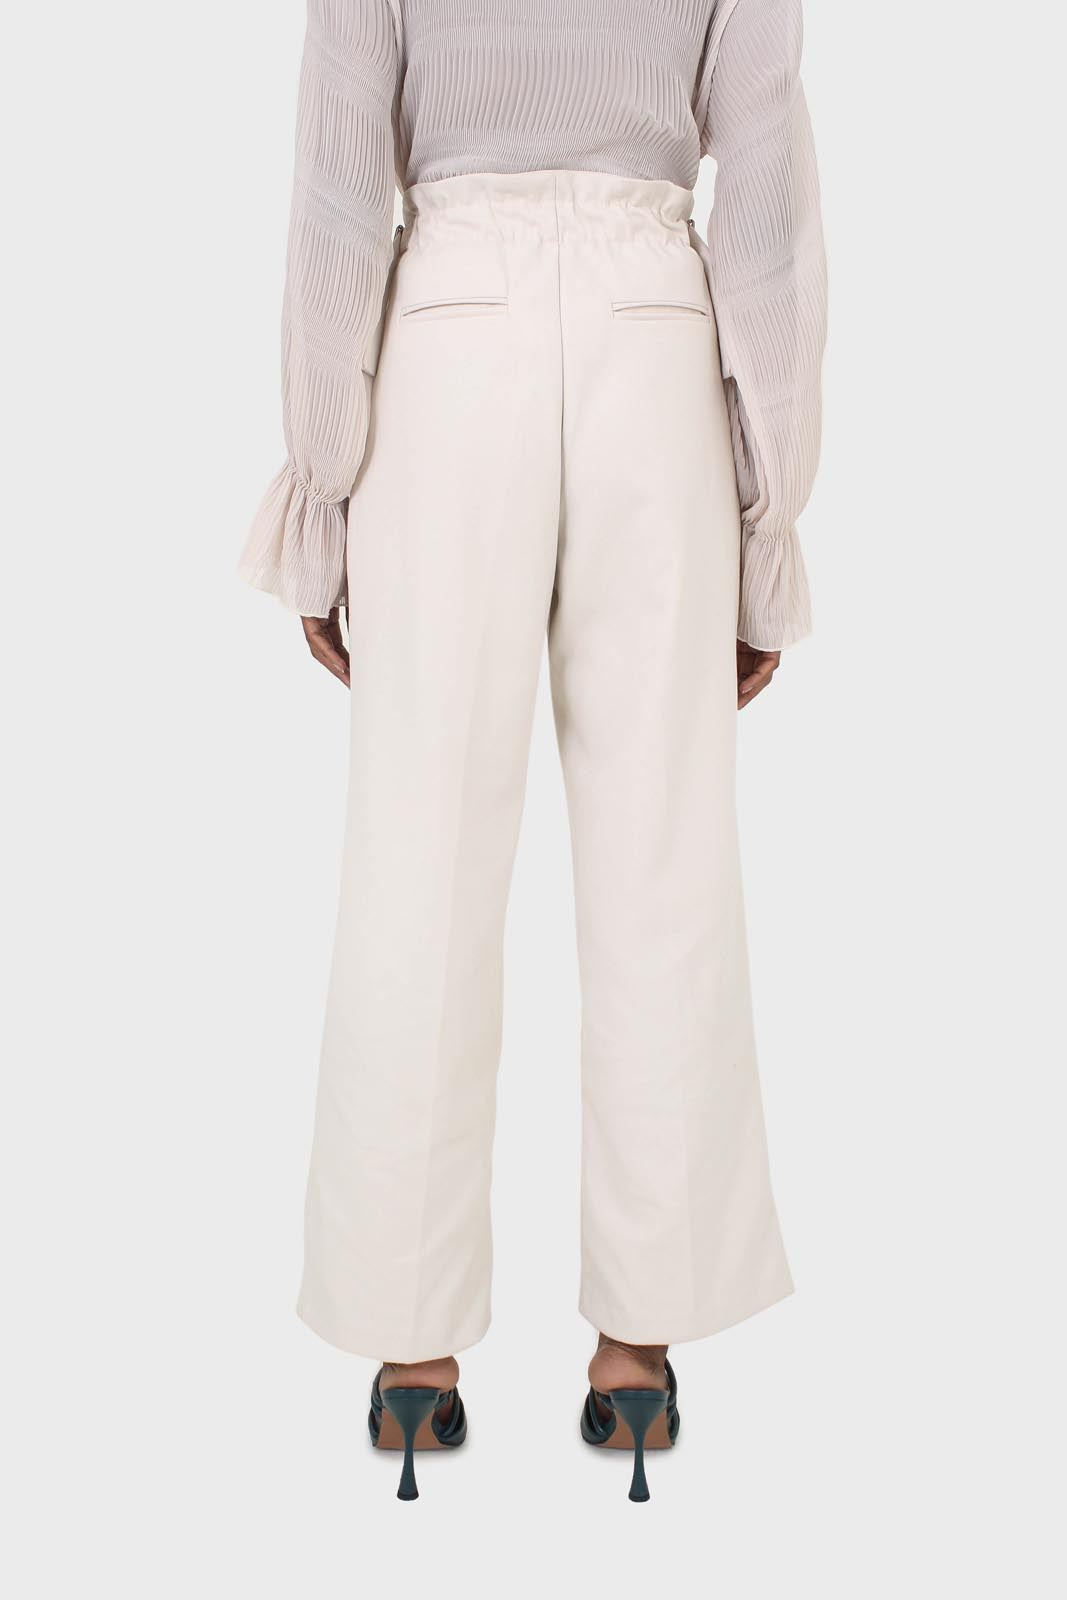 Ivory side buckle wide leg trousers6